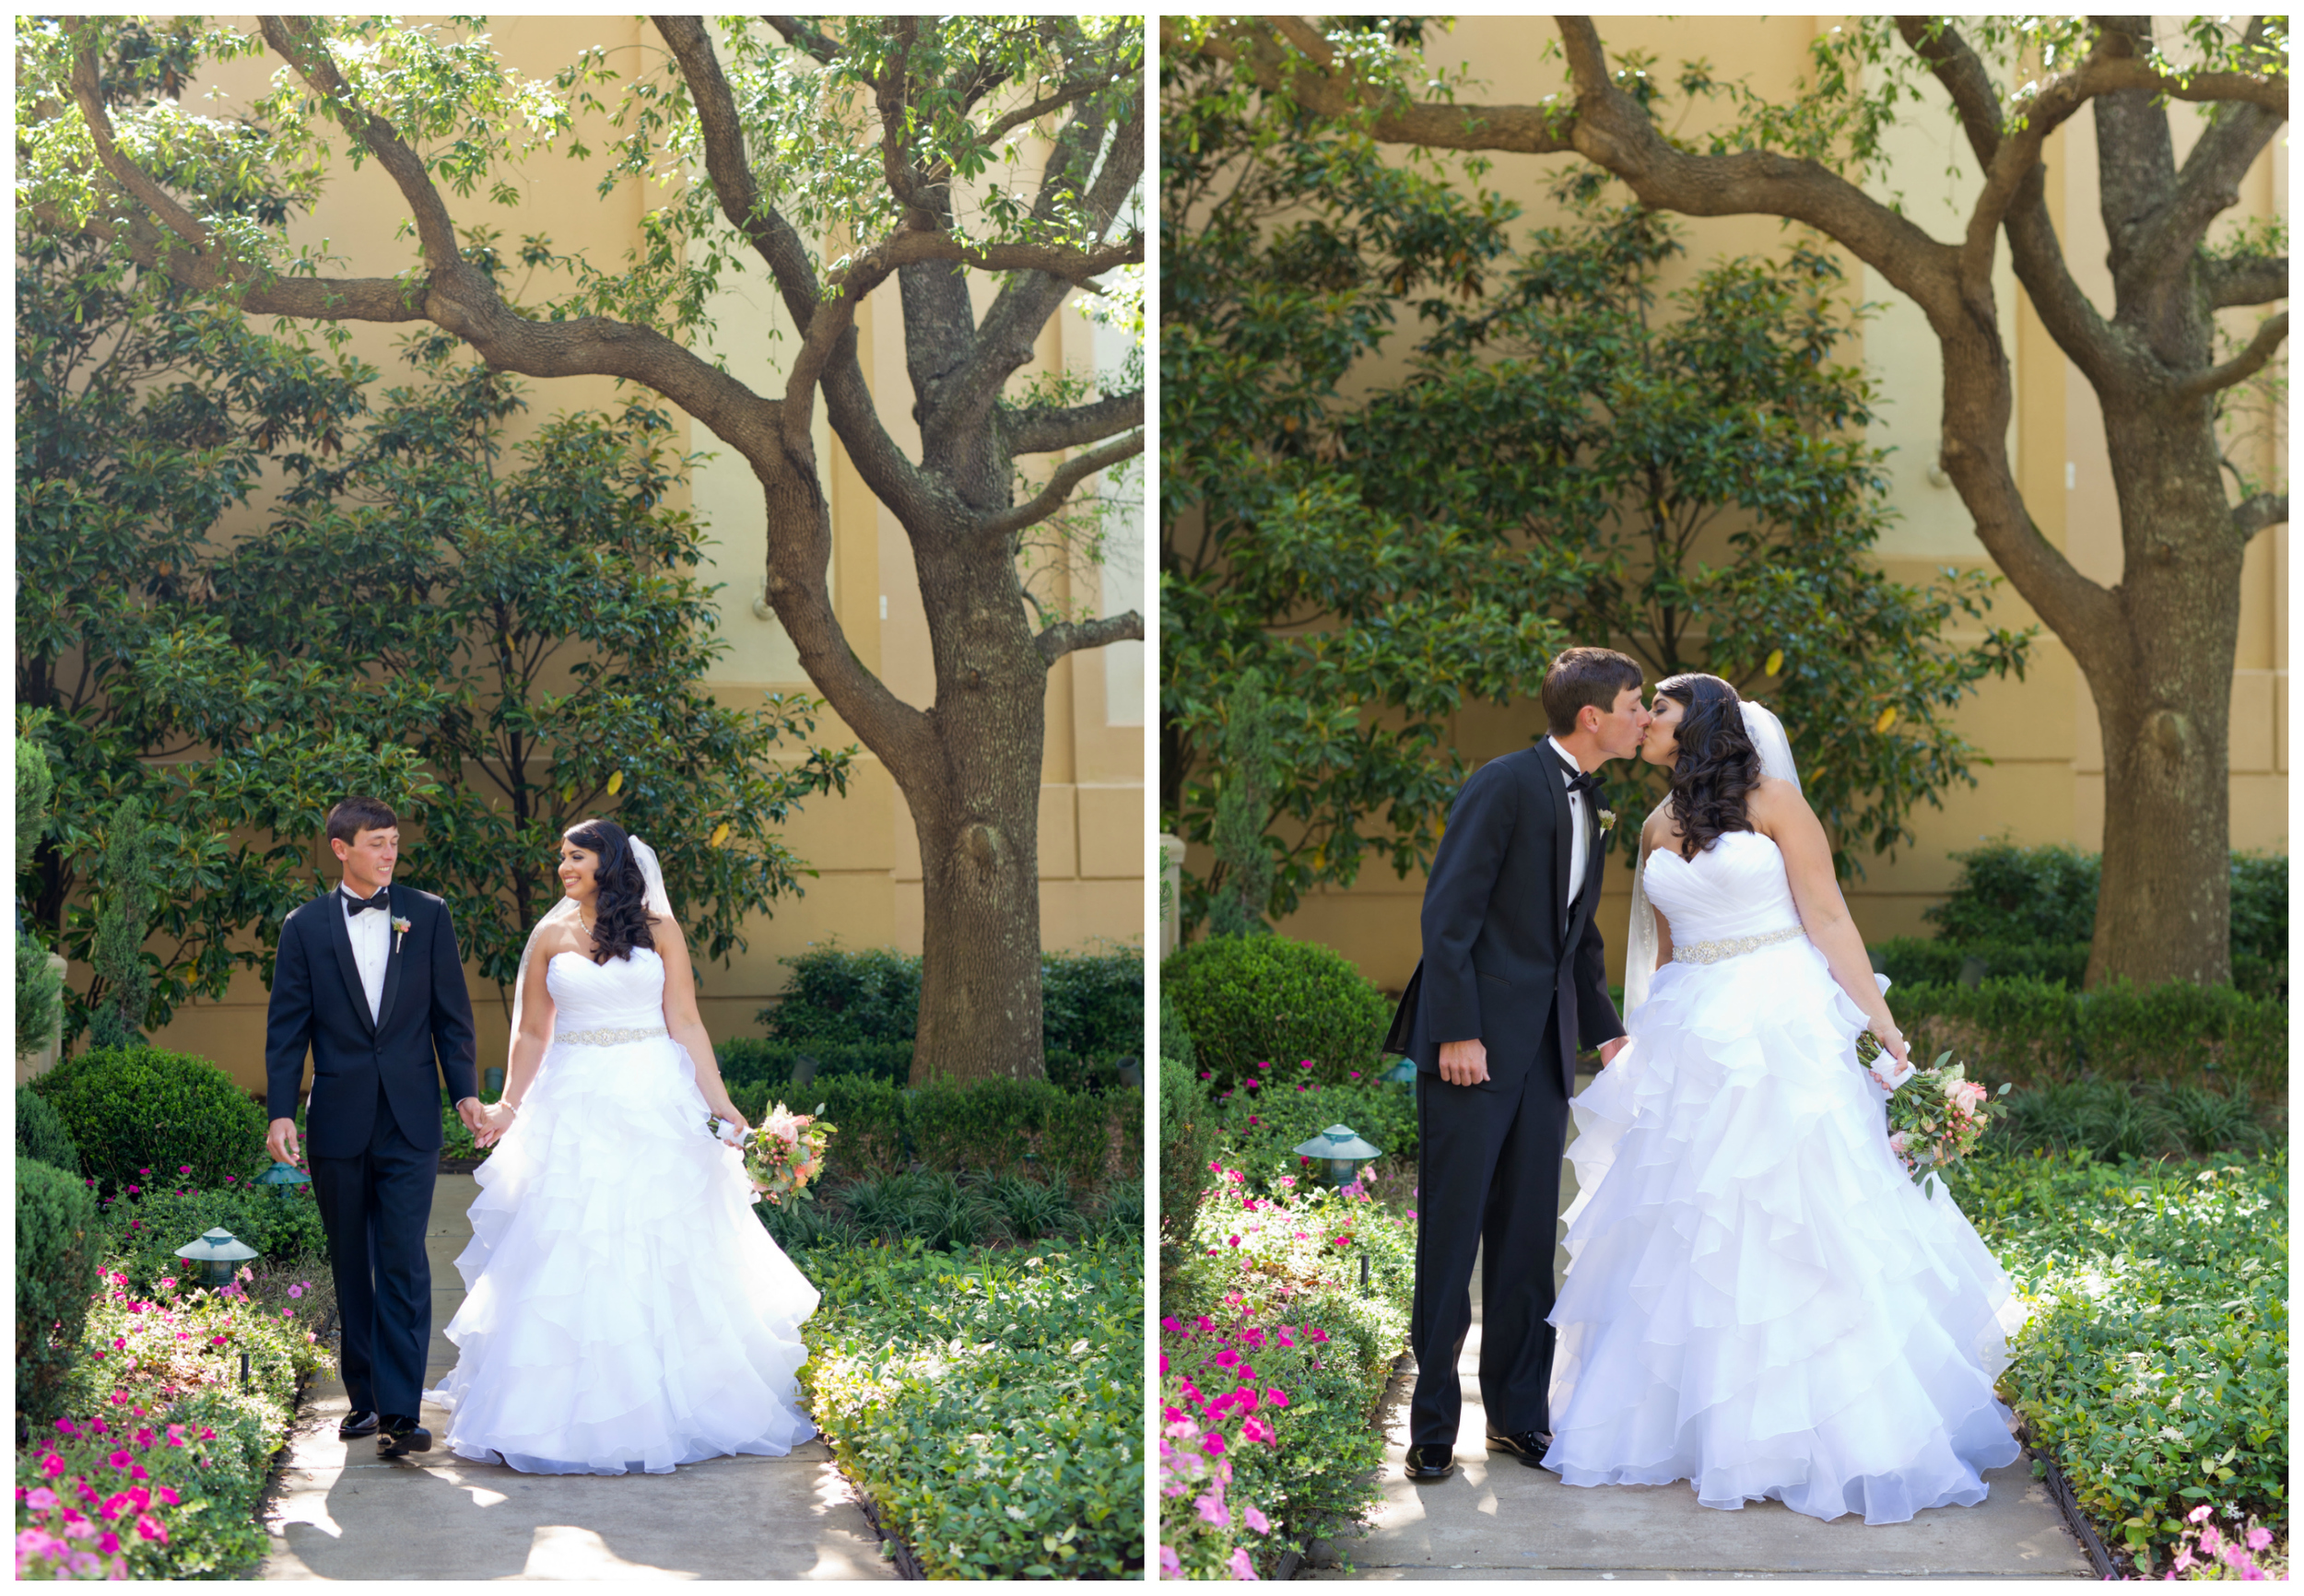 lovely outdoor wedding portraits with bride and groom in gardens at Beau Rivage (Uninvented Colors photograph)